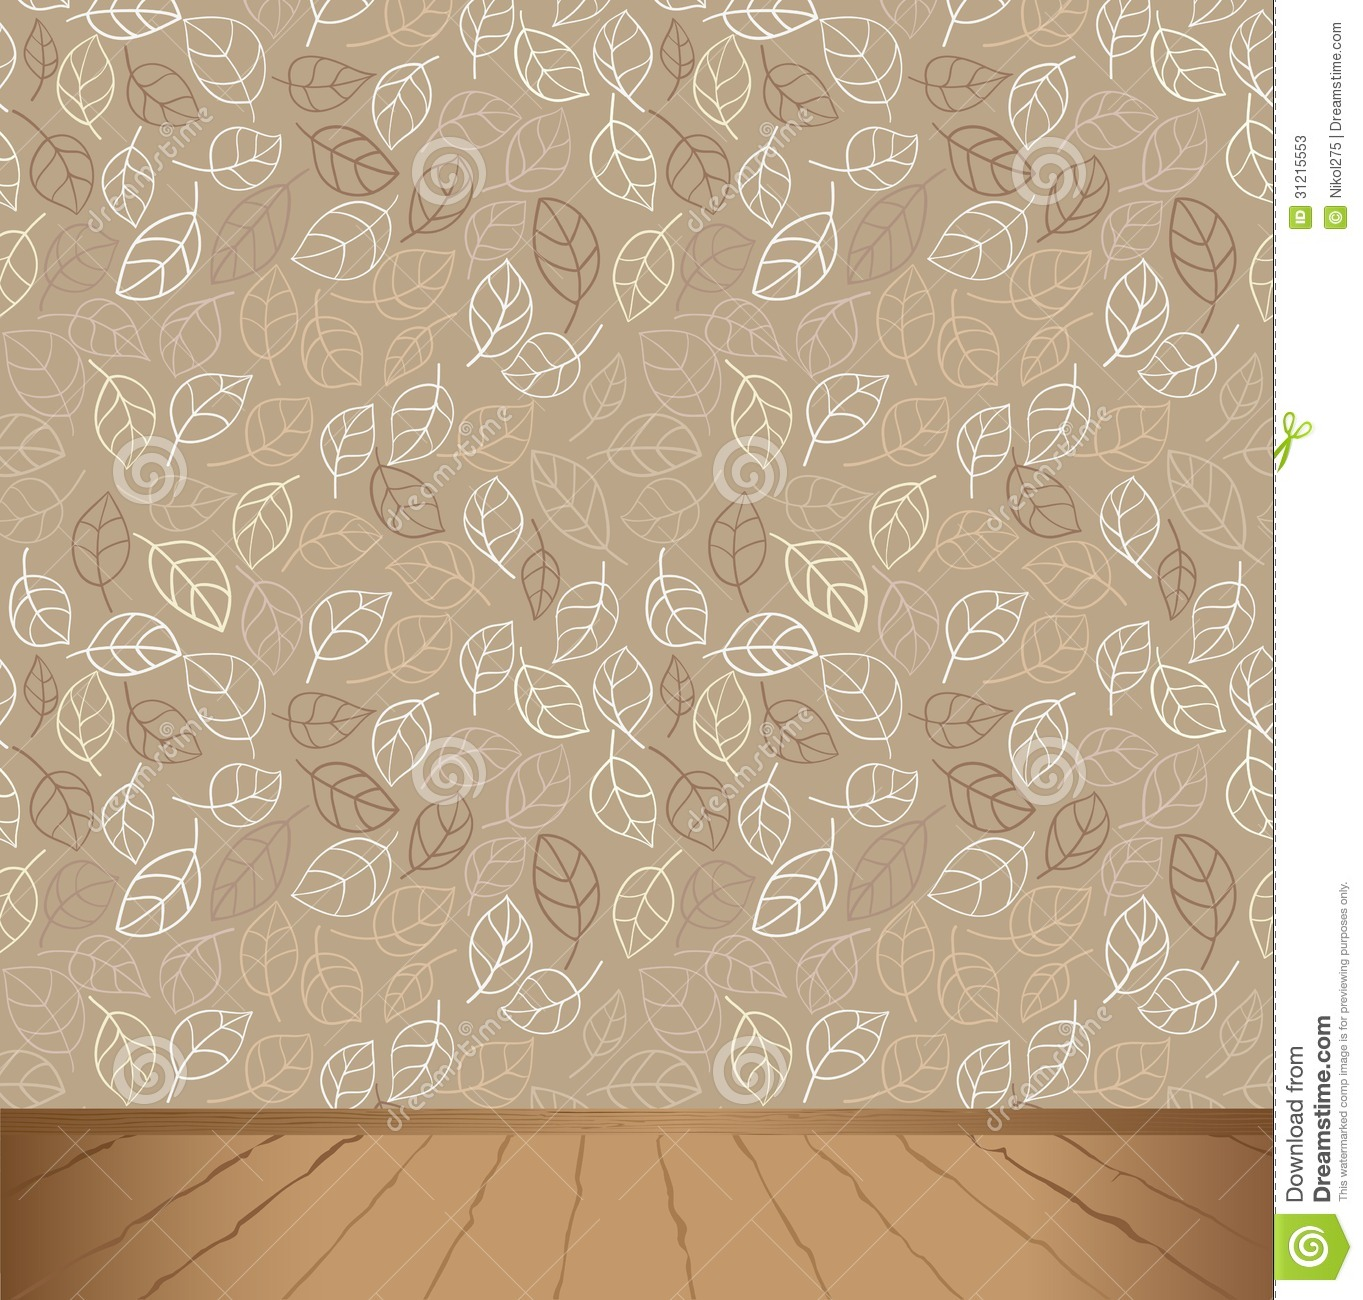 Wallpaper Pattern For Interior Innovation rbserviscom